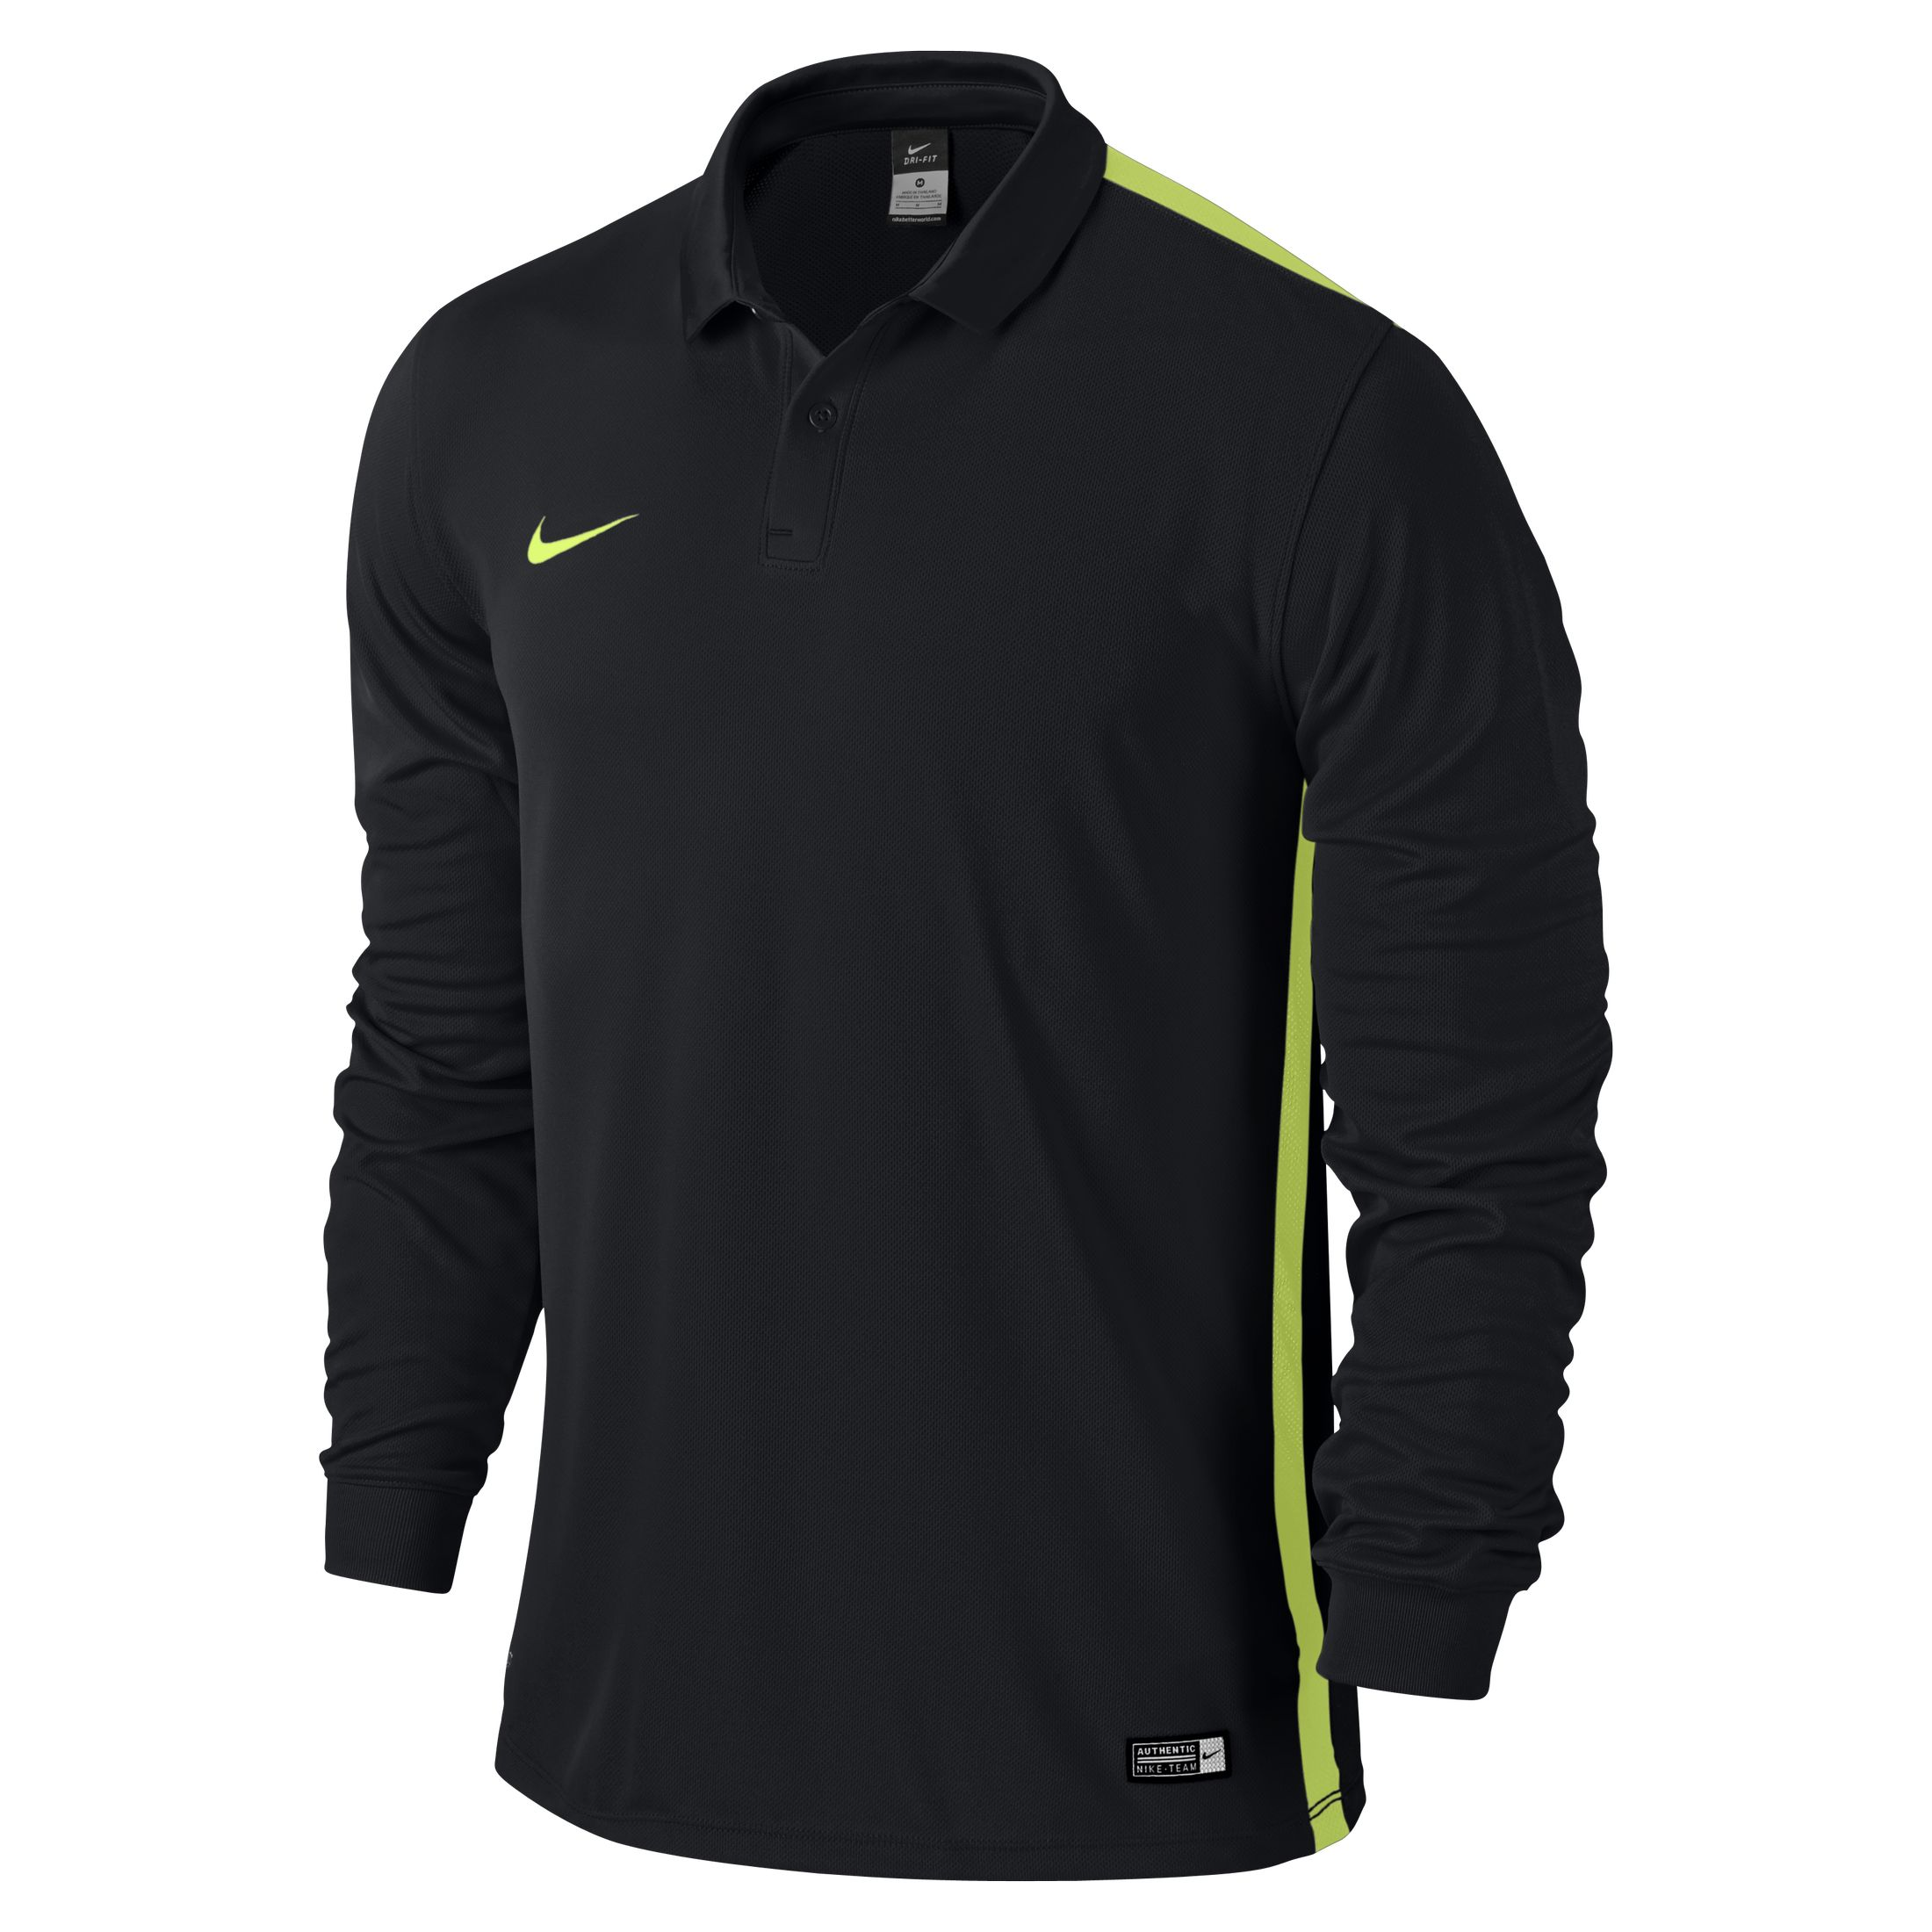 soldes nike air max 1 - Maillot Nike Victory II Manches Longues Adulte | EKINSPORT